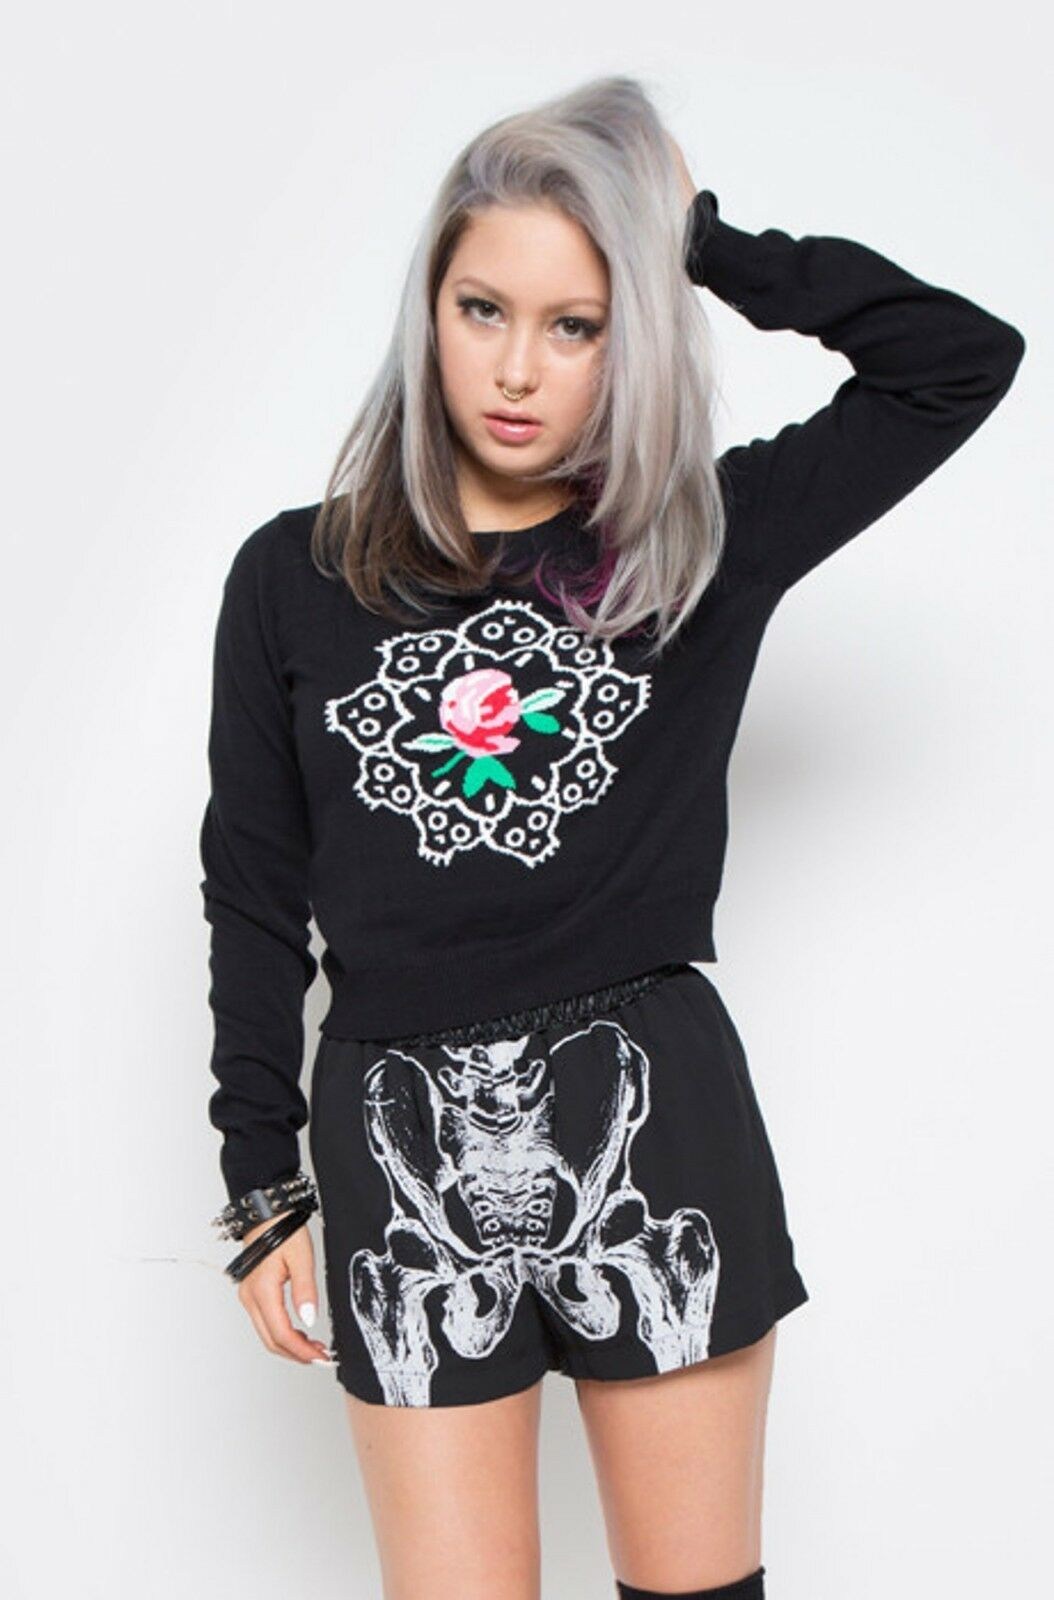 Iron Fist Fist Fist RING AROUND THE ROSIE SWEATER Flowers Skull top 2c5a19